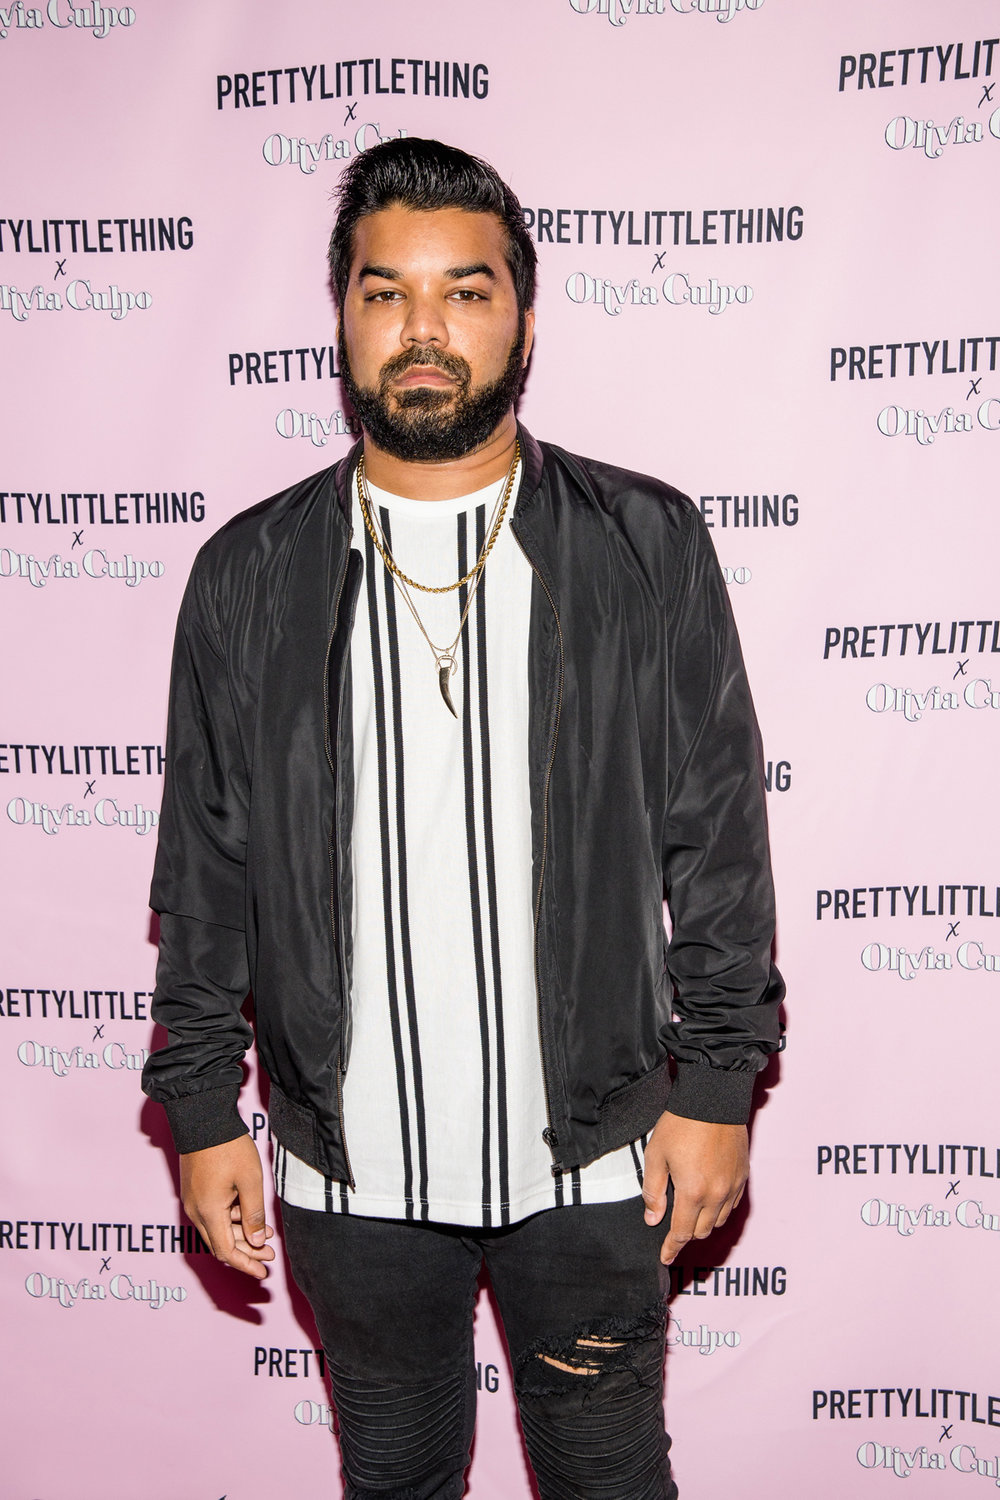 PrettyLittleThing PLT X Olivia Culpo Collection  Celebrity Launch Party Adrian Dev.jpg